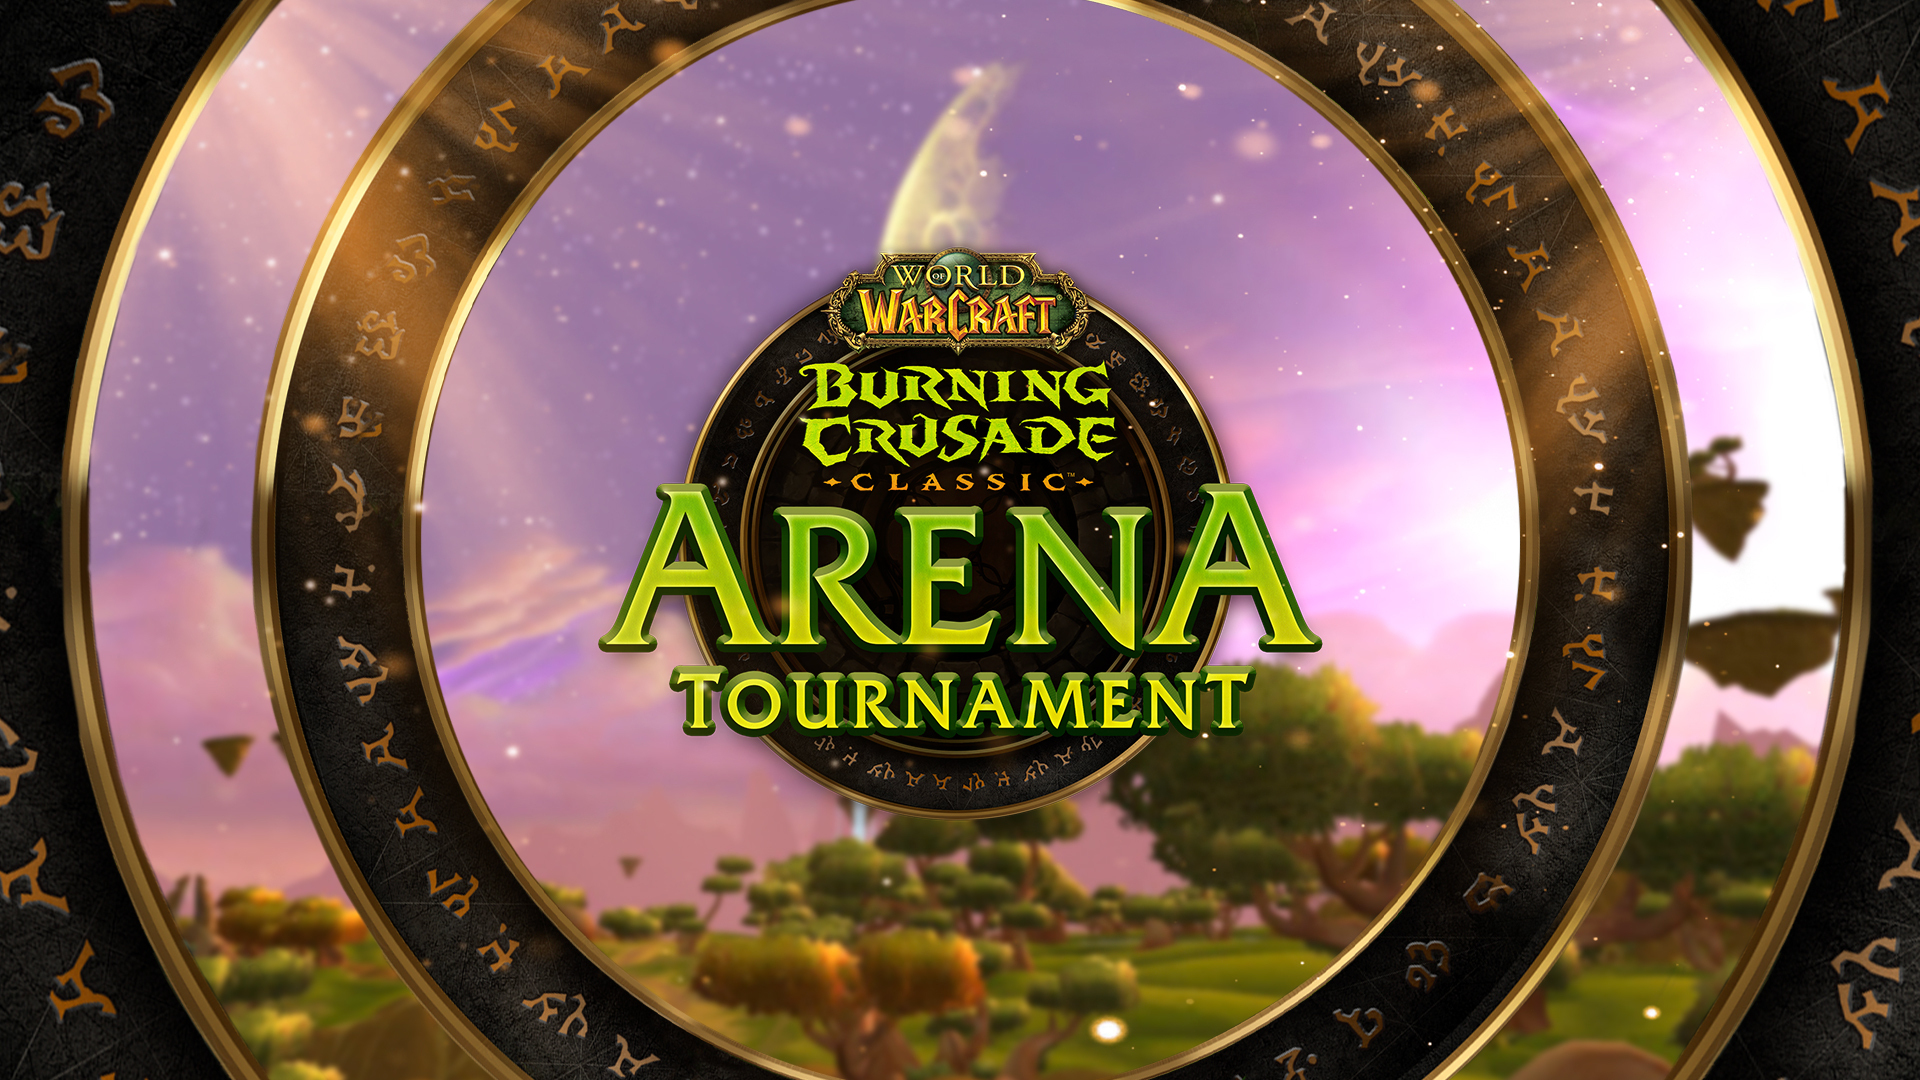 Burning Crusade Classic Arena Tournament Begins on Friday!